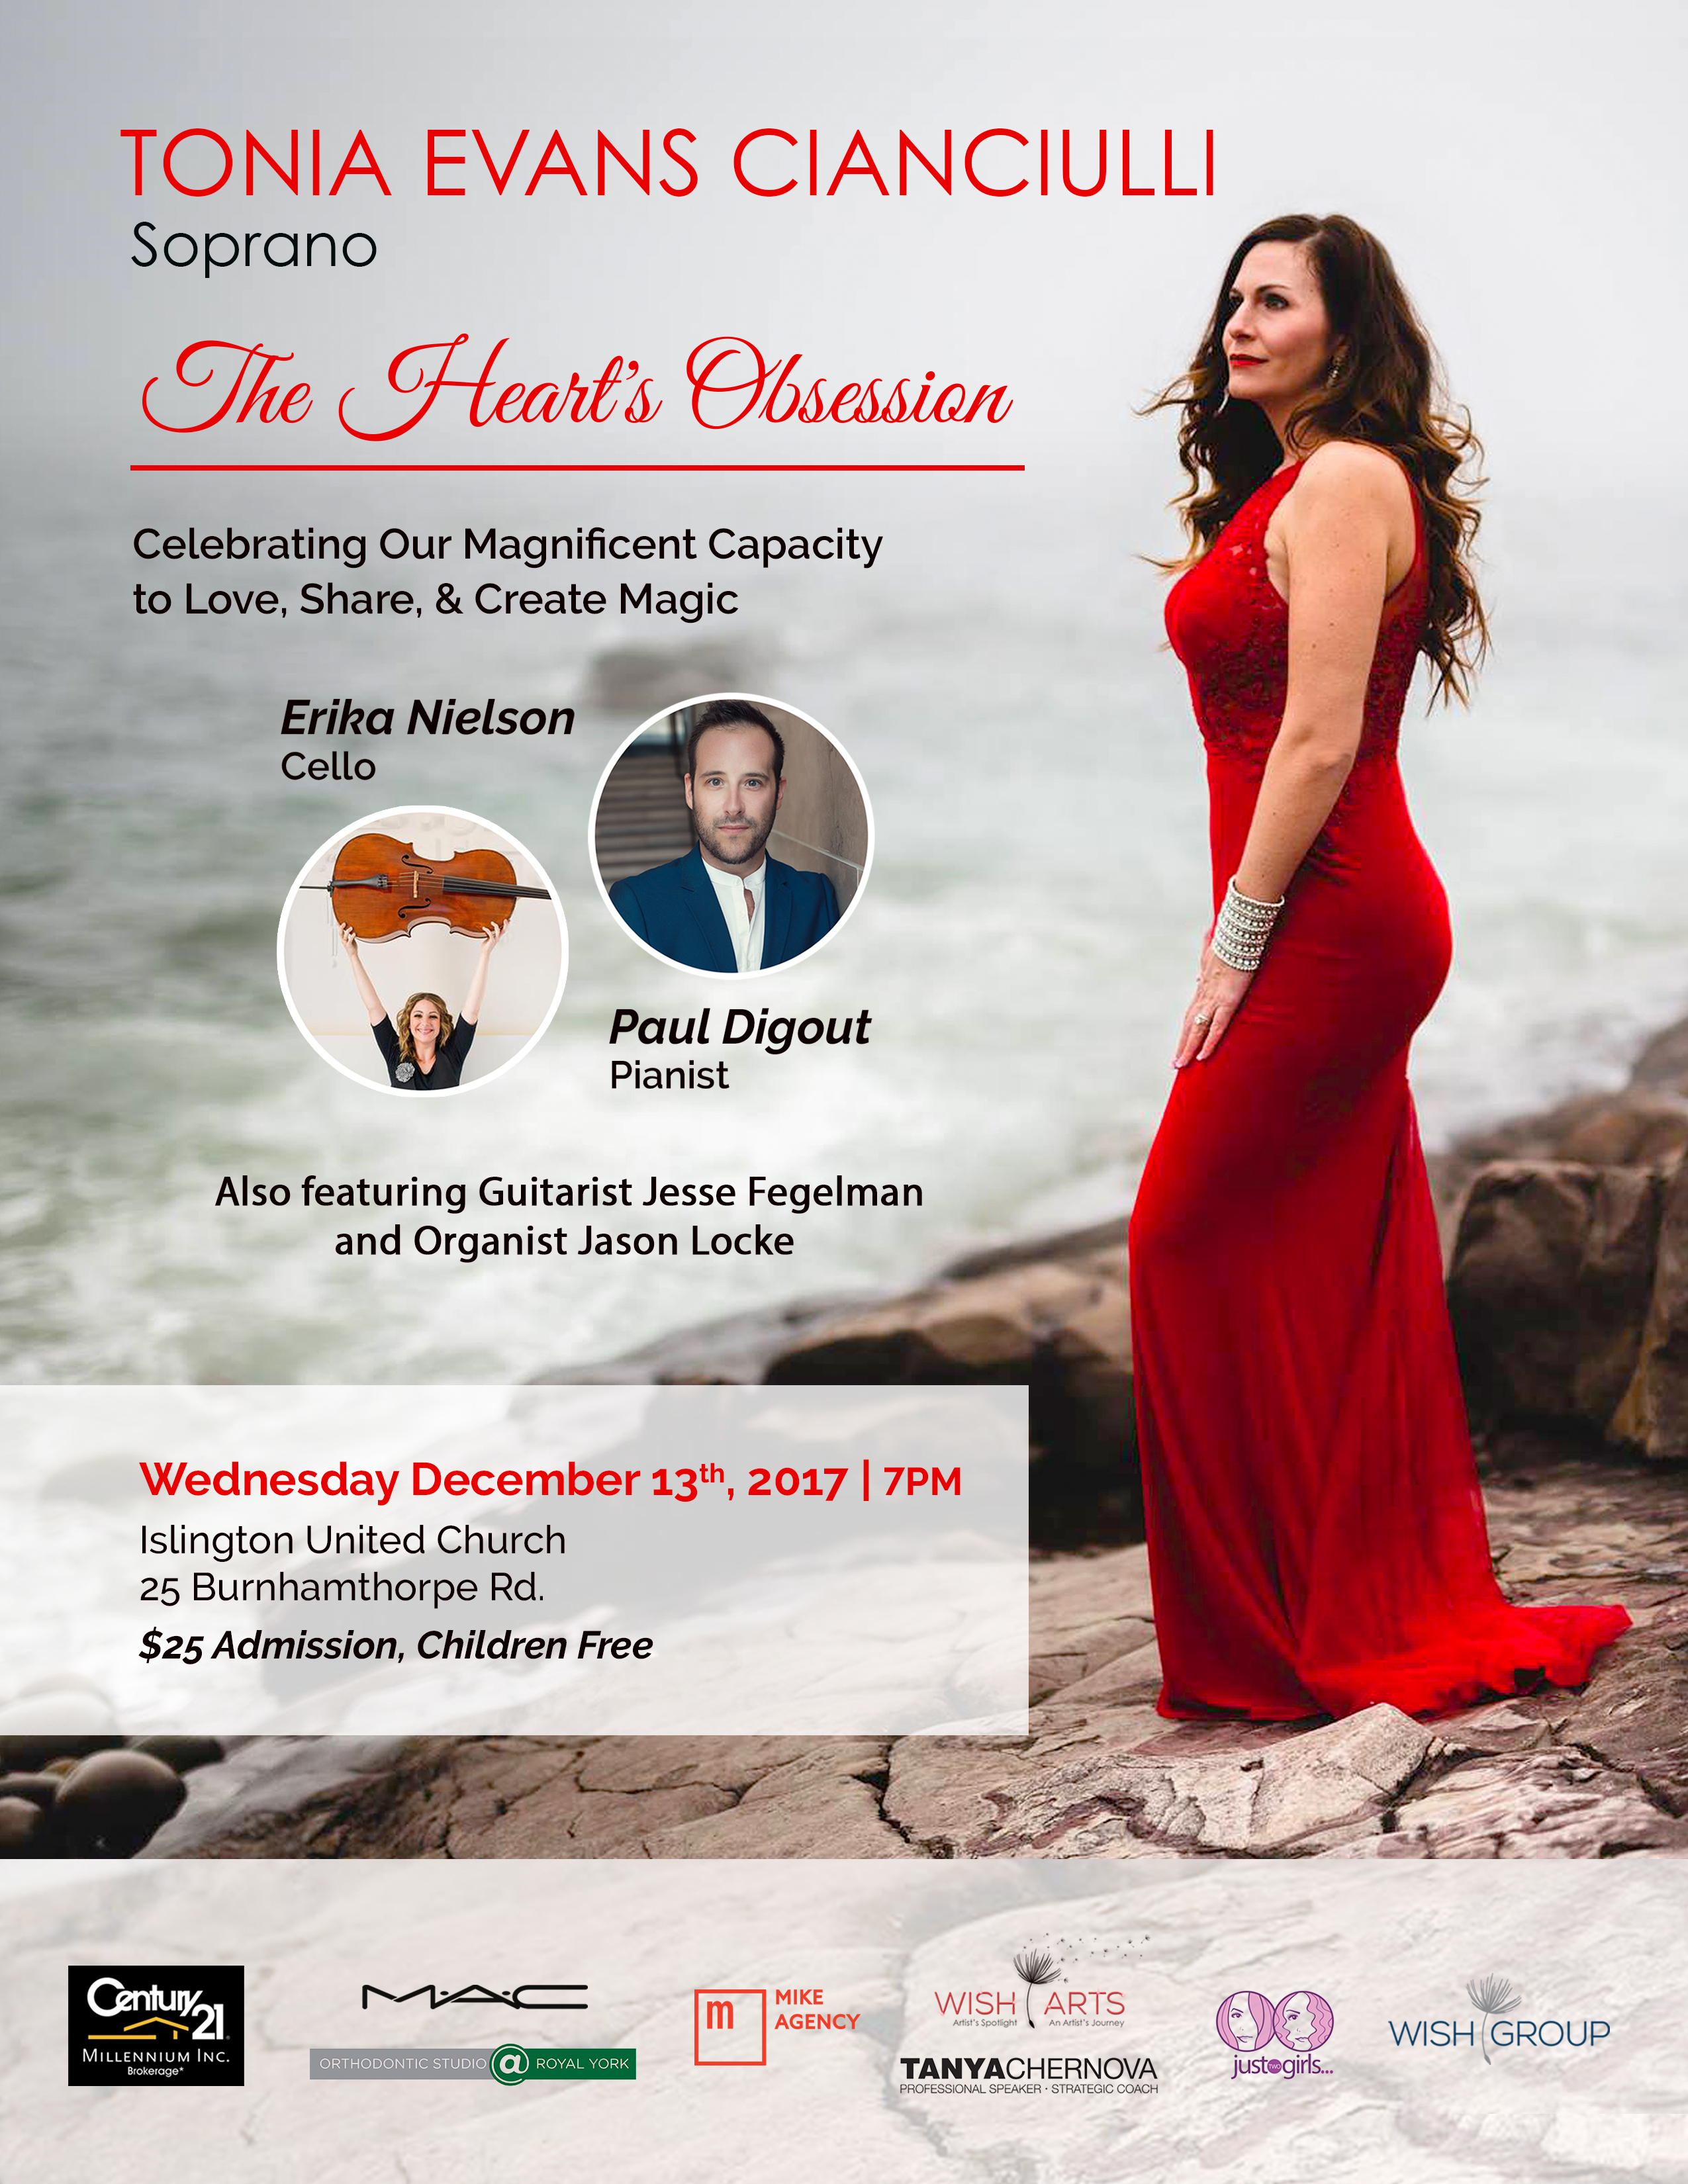 The Heart's Obsession Concert